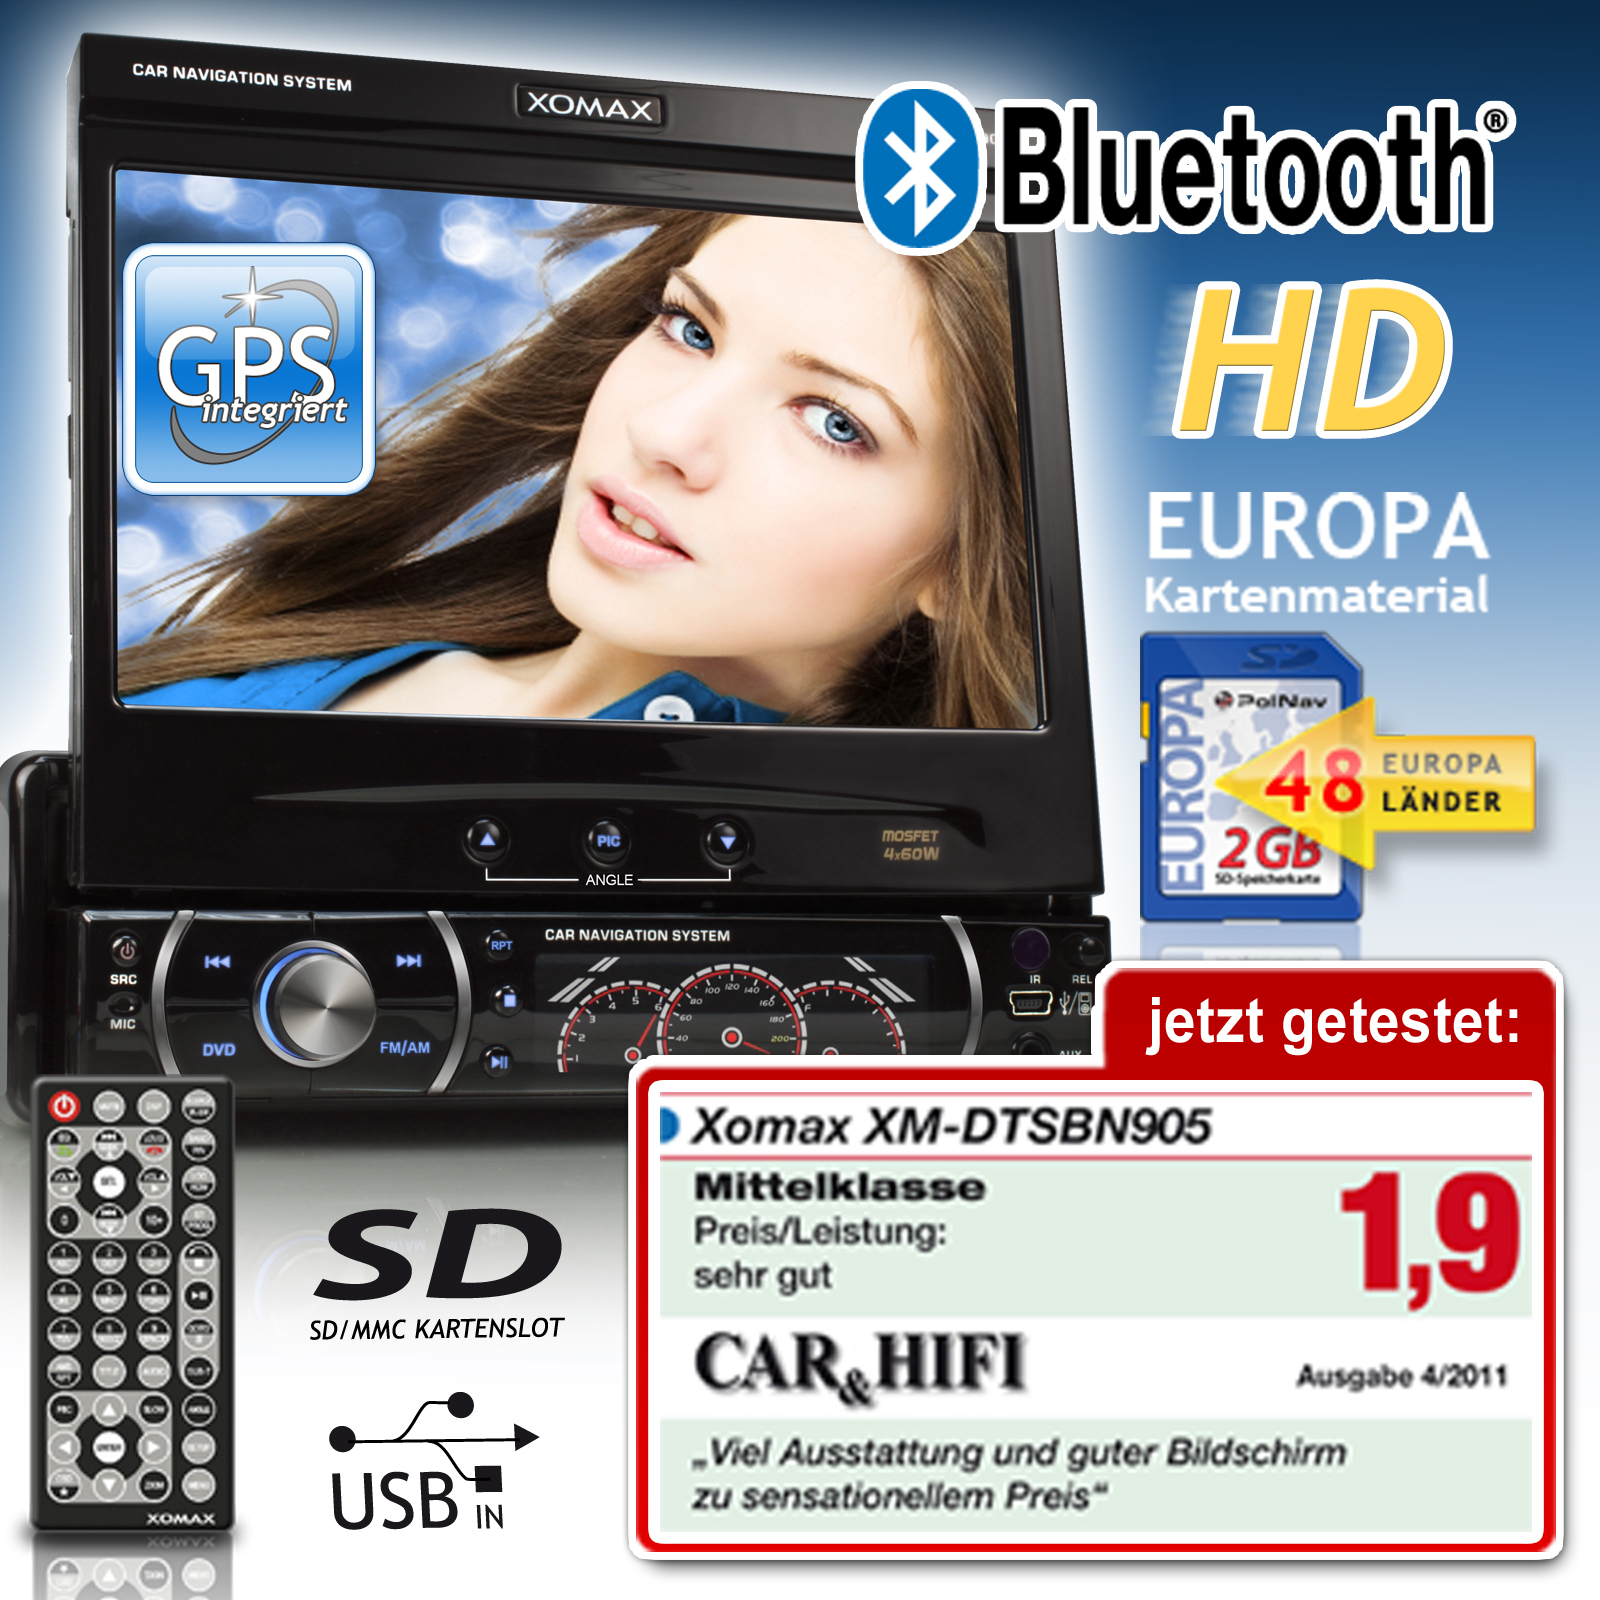 autoradio mit navigation navi bluetooth touchscreen dvd cd player usb sd 1din ebay. Black Bedroom Furniture Sets. Home Design Ideas